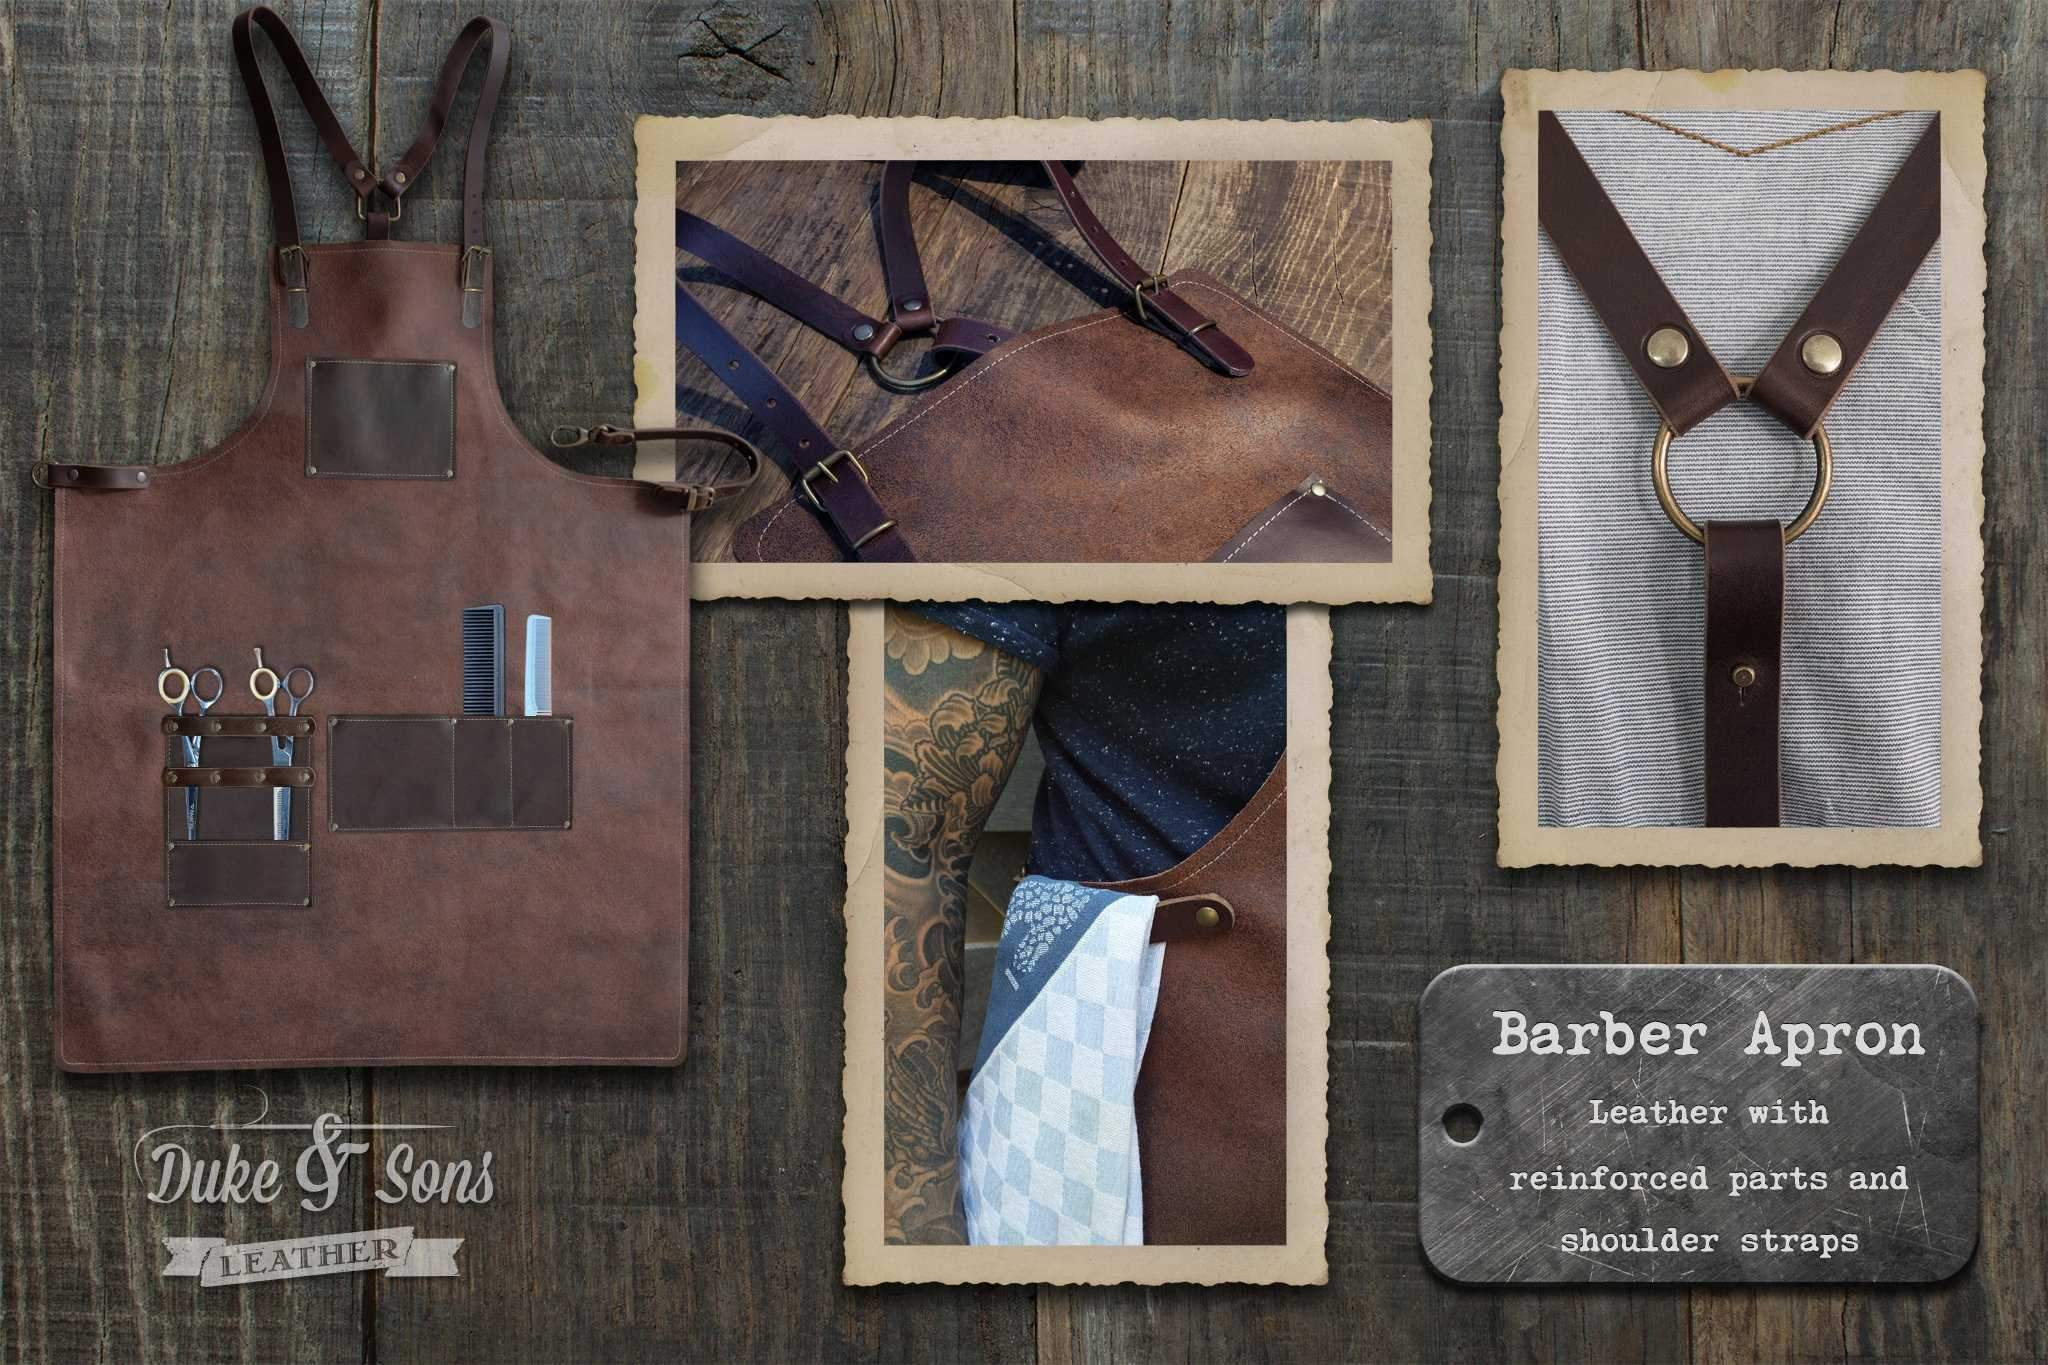 Barber apron, brown leather with pockets for shears and combs. | Duke & Sons Leather